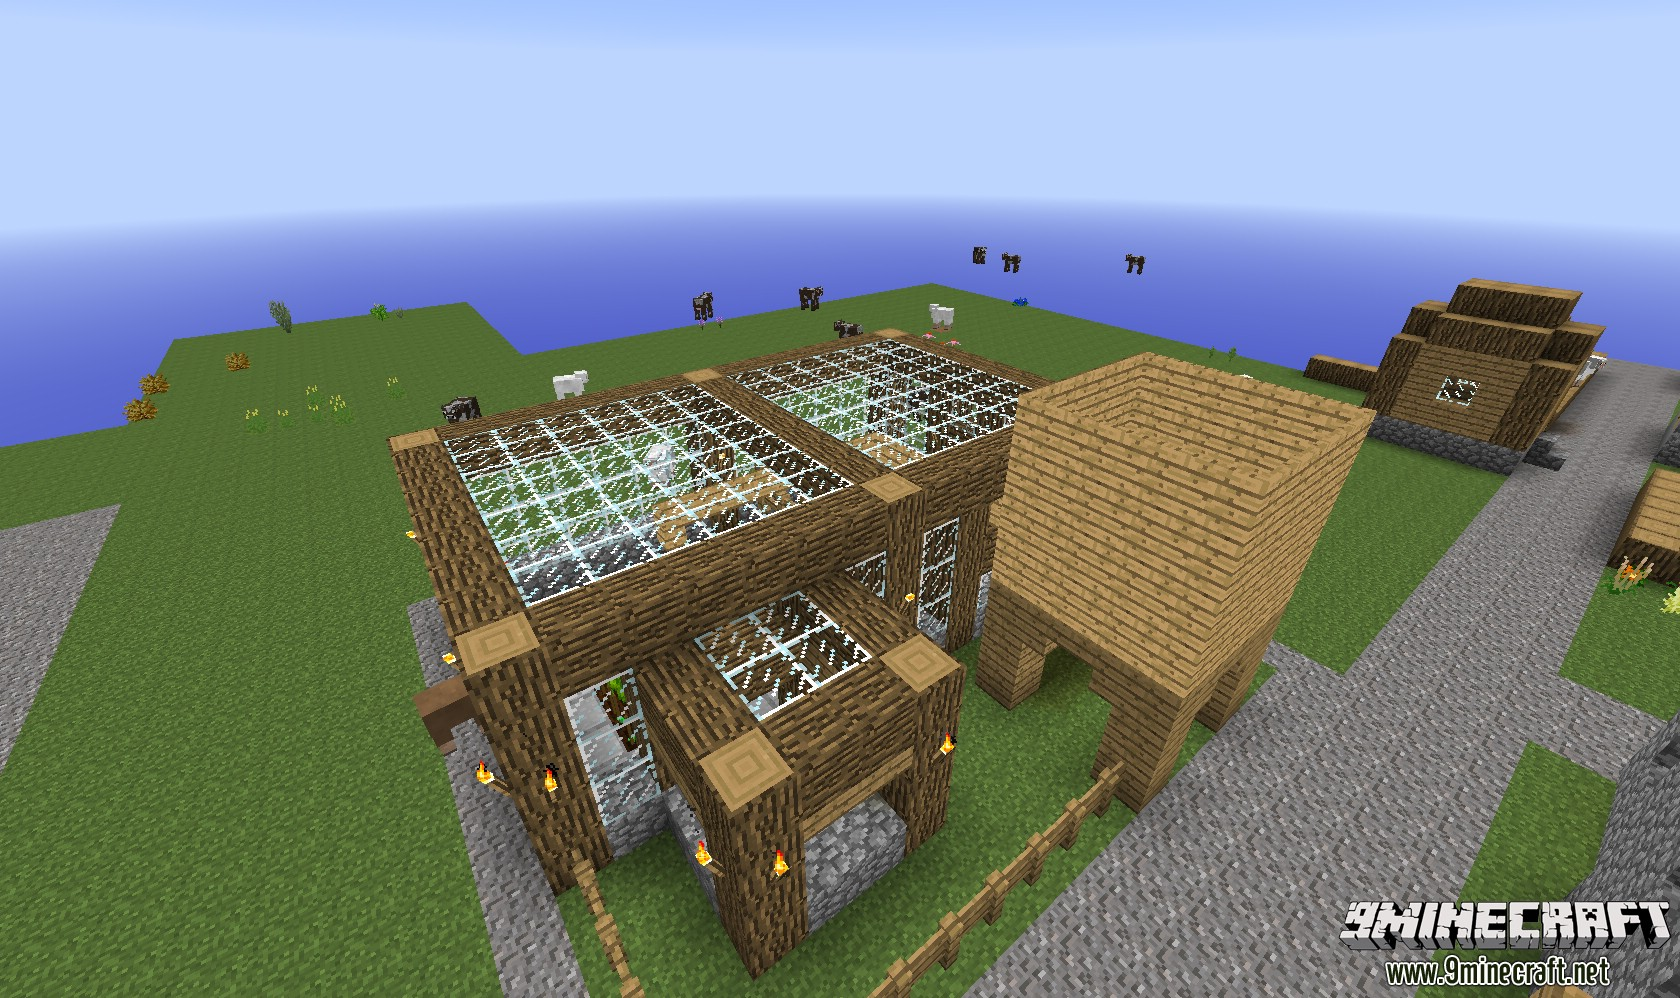 1485208634_140_agricraft-mod-1-10-21-7-10-agriculture-in-minecraft AgriCraft Mod 1.10.2/1.7.10 (Agriculture in Minecraft)